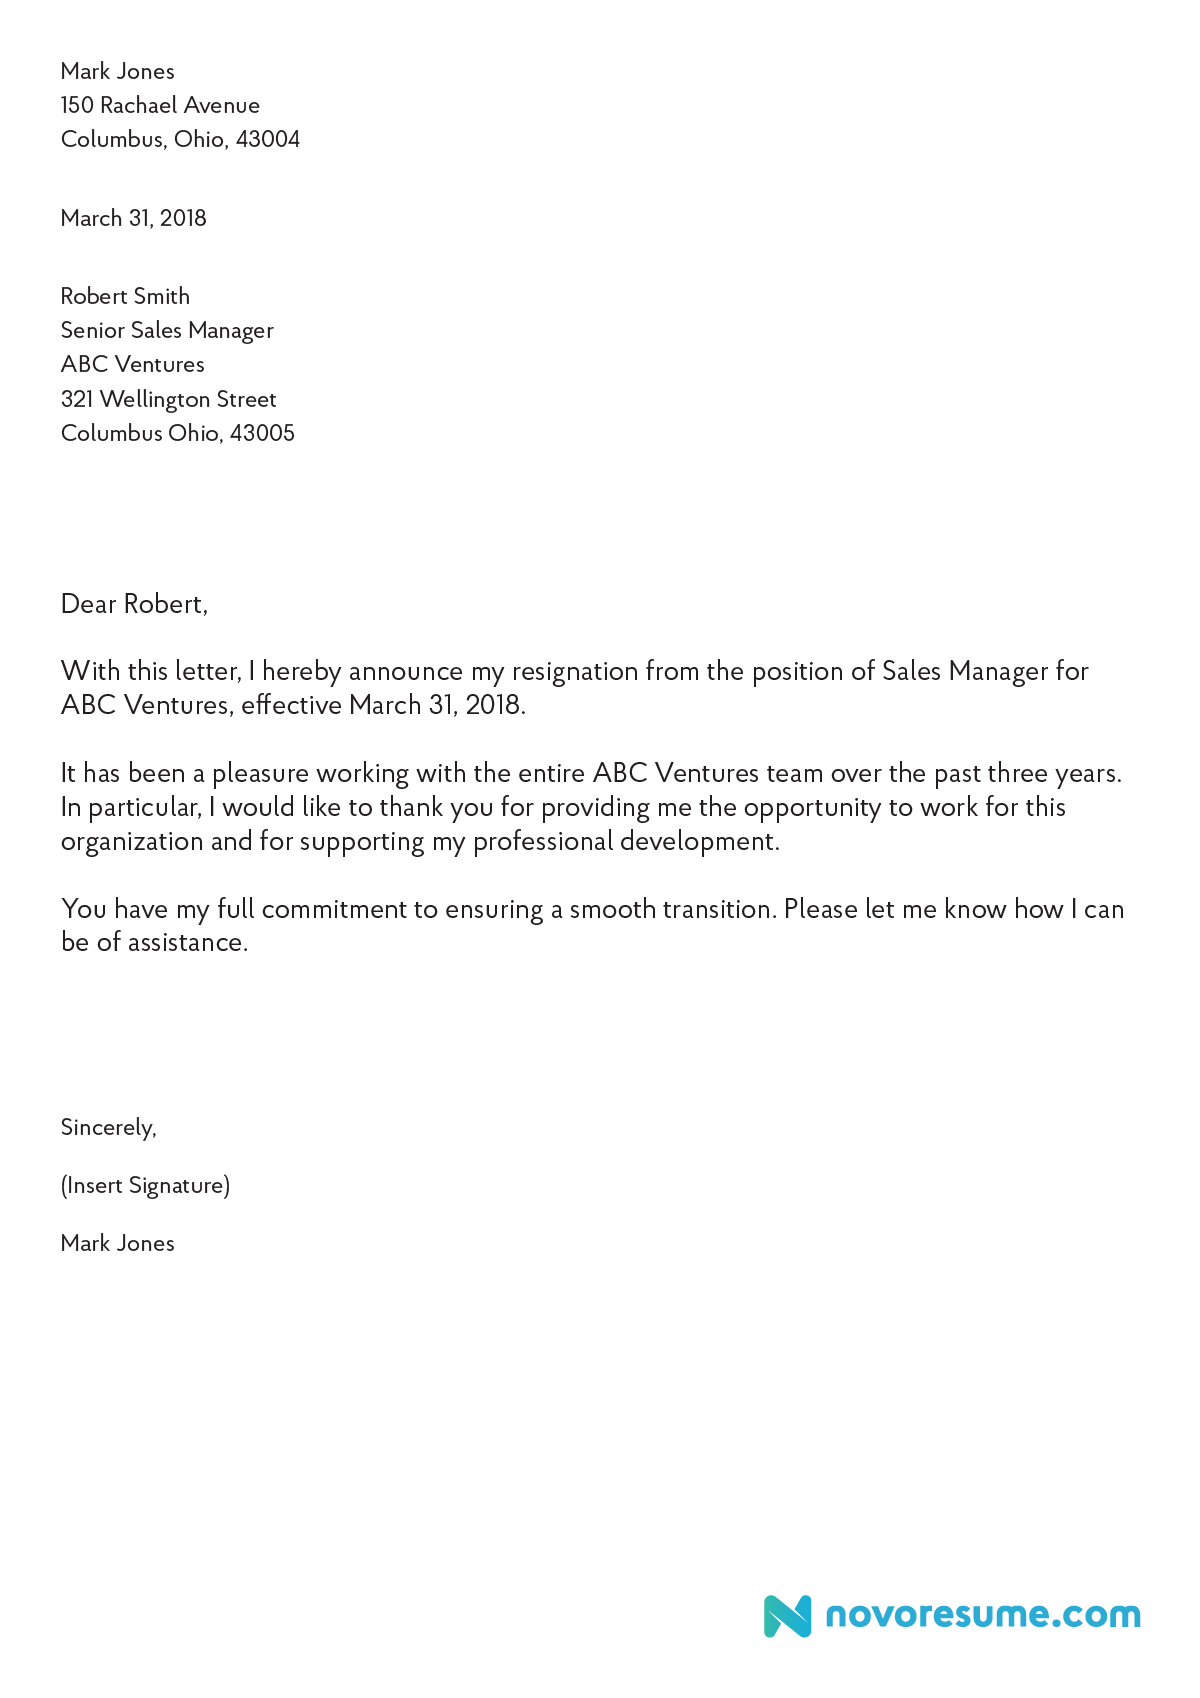 Resignation Letter Templates | How To Write A Letter Of Resignation 2019 Extensive Guide